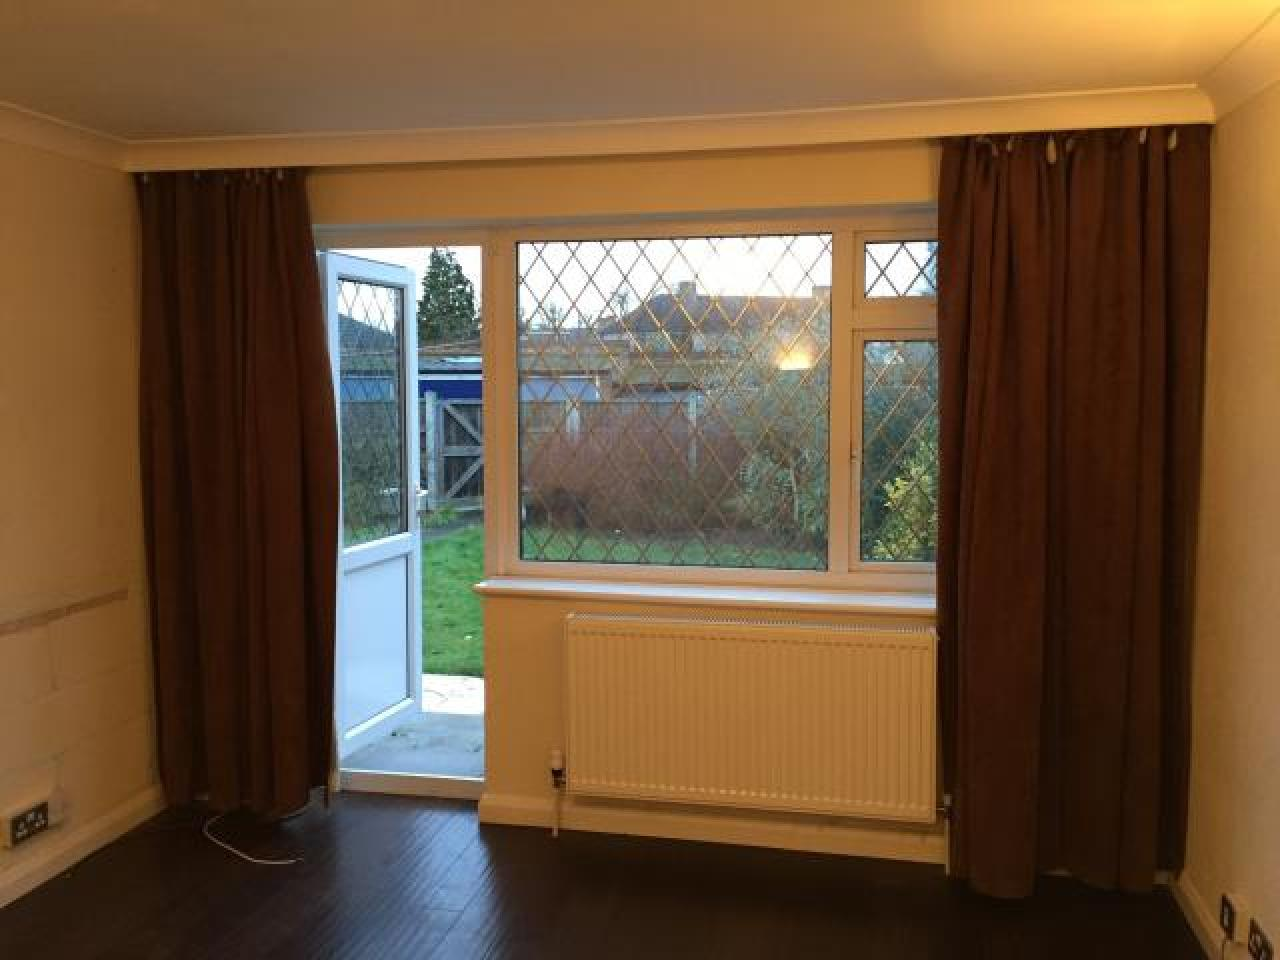 2 bedroom flat for rent in Collier Row,Romford - 5